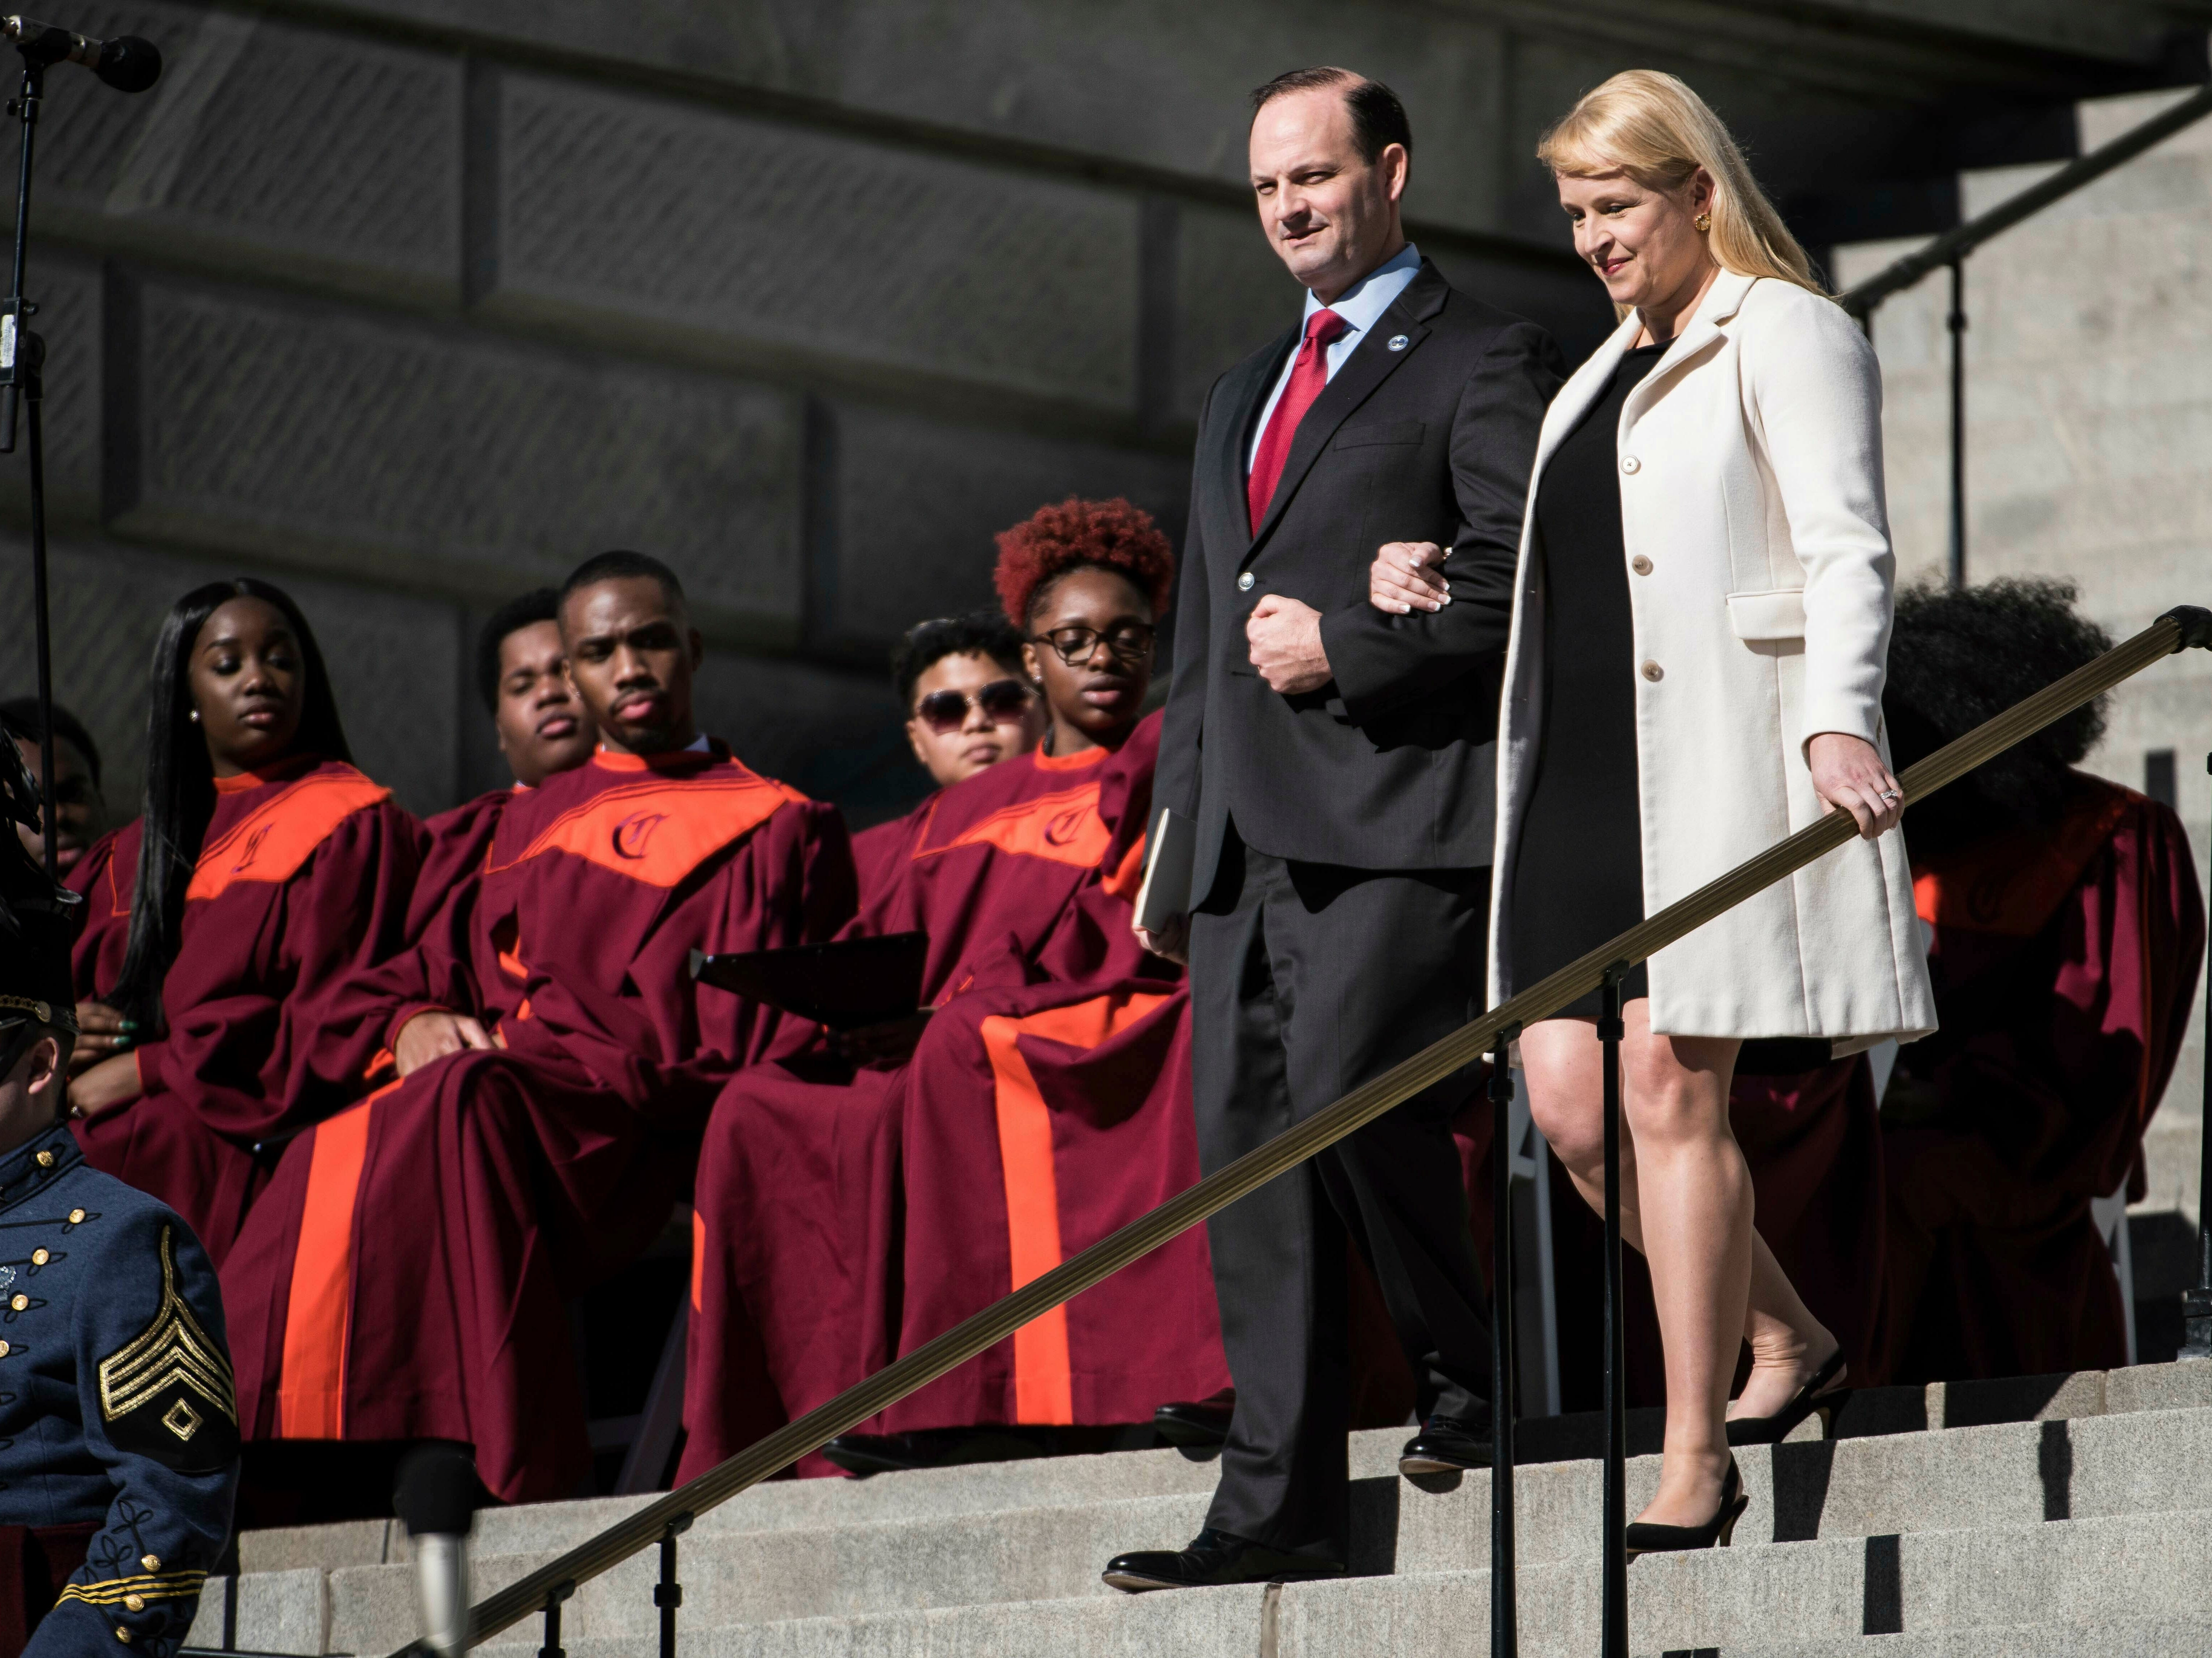 South Carolina Attorney General Alan Wilson, left, and his wife, Jennifer Wilson, walk down steps during inauguration ceremonies for Governor Henry McMaster at the South Carolina Statehouse, Wednesday, Jan. 9, 2019, in Columbia, S.C. (AP Photo/Sean Rayford)